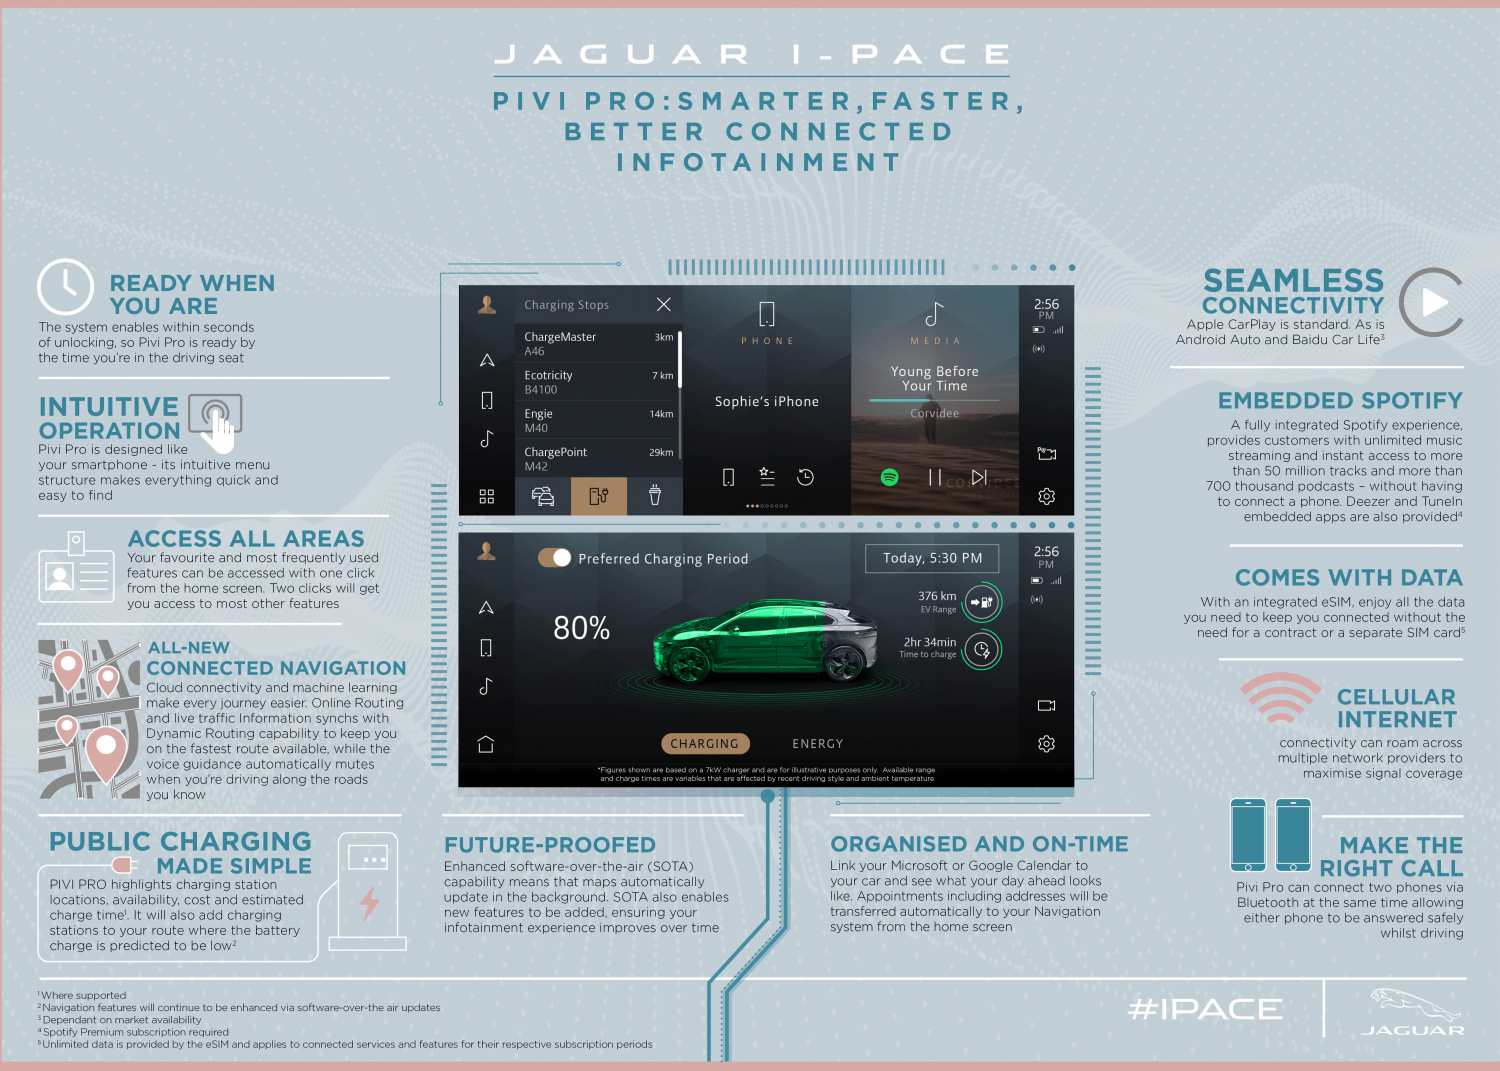 Jaguar I-pace now Smarter, Better Connected and Faster-charging - Image 1